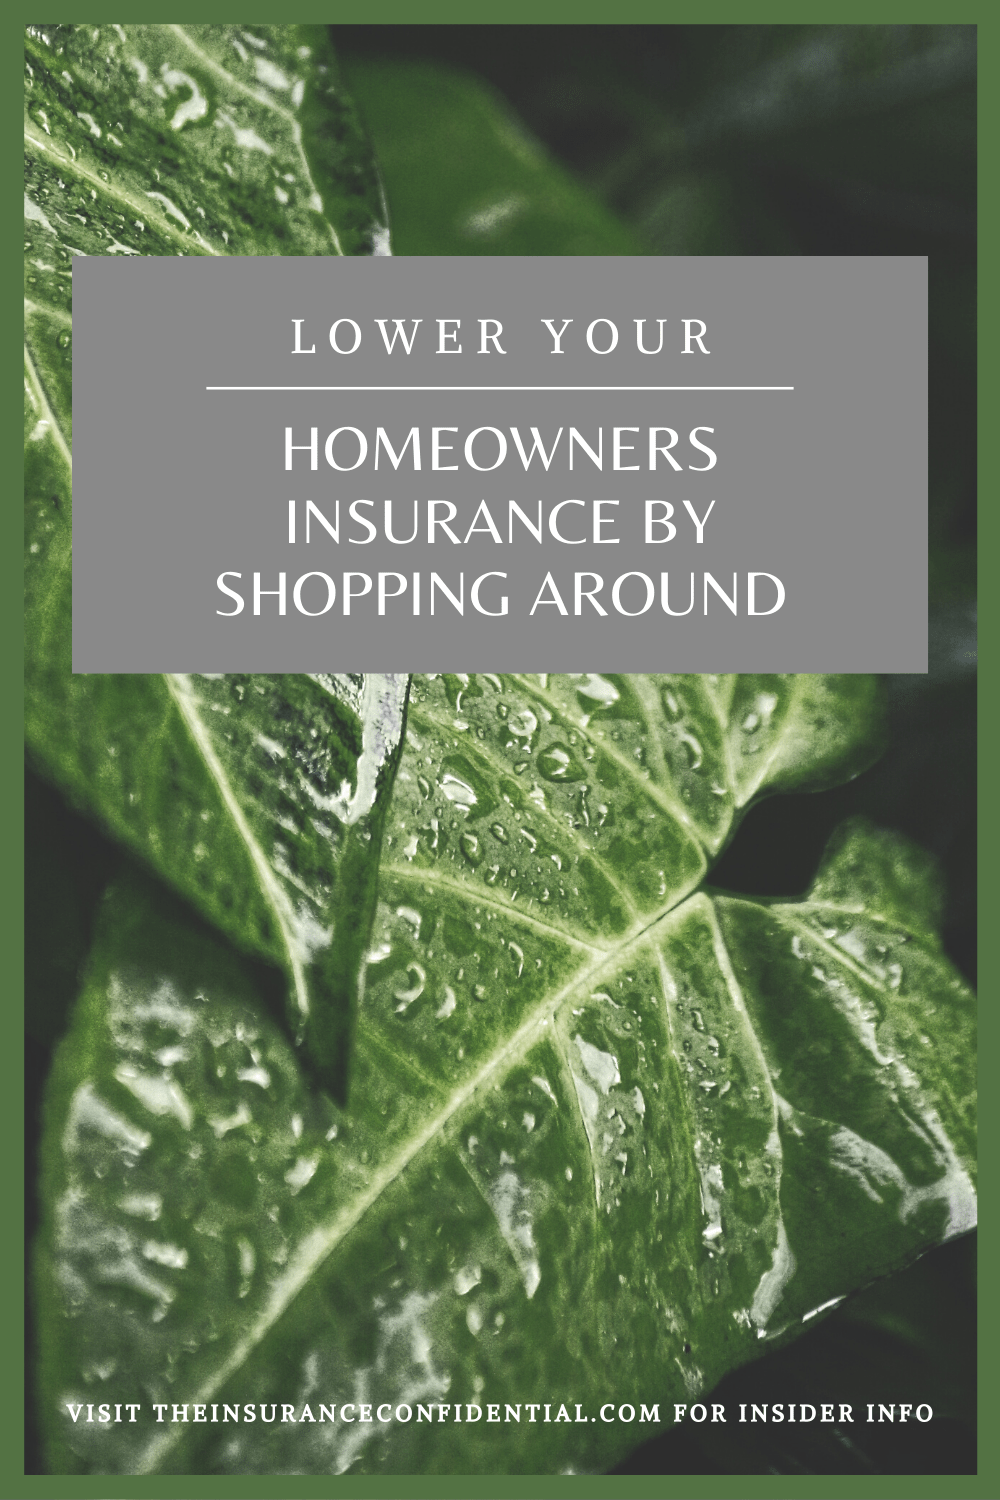 Learn how to lower your homeowners insurance by simply shopping around. I've included a how to guide along with downloads to help you compare insurance. via @The_Insurance_Confidential